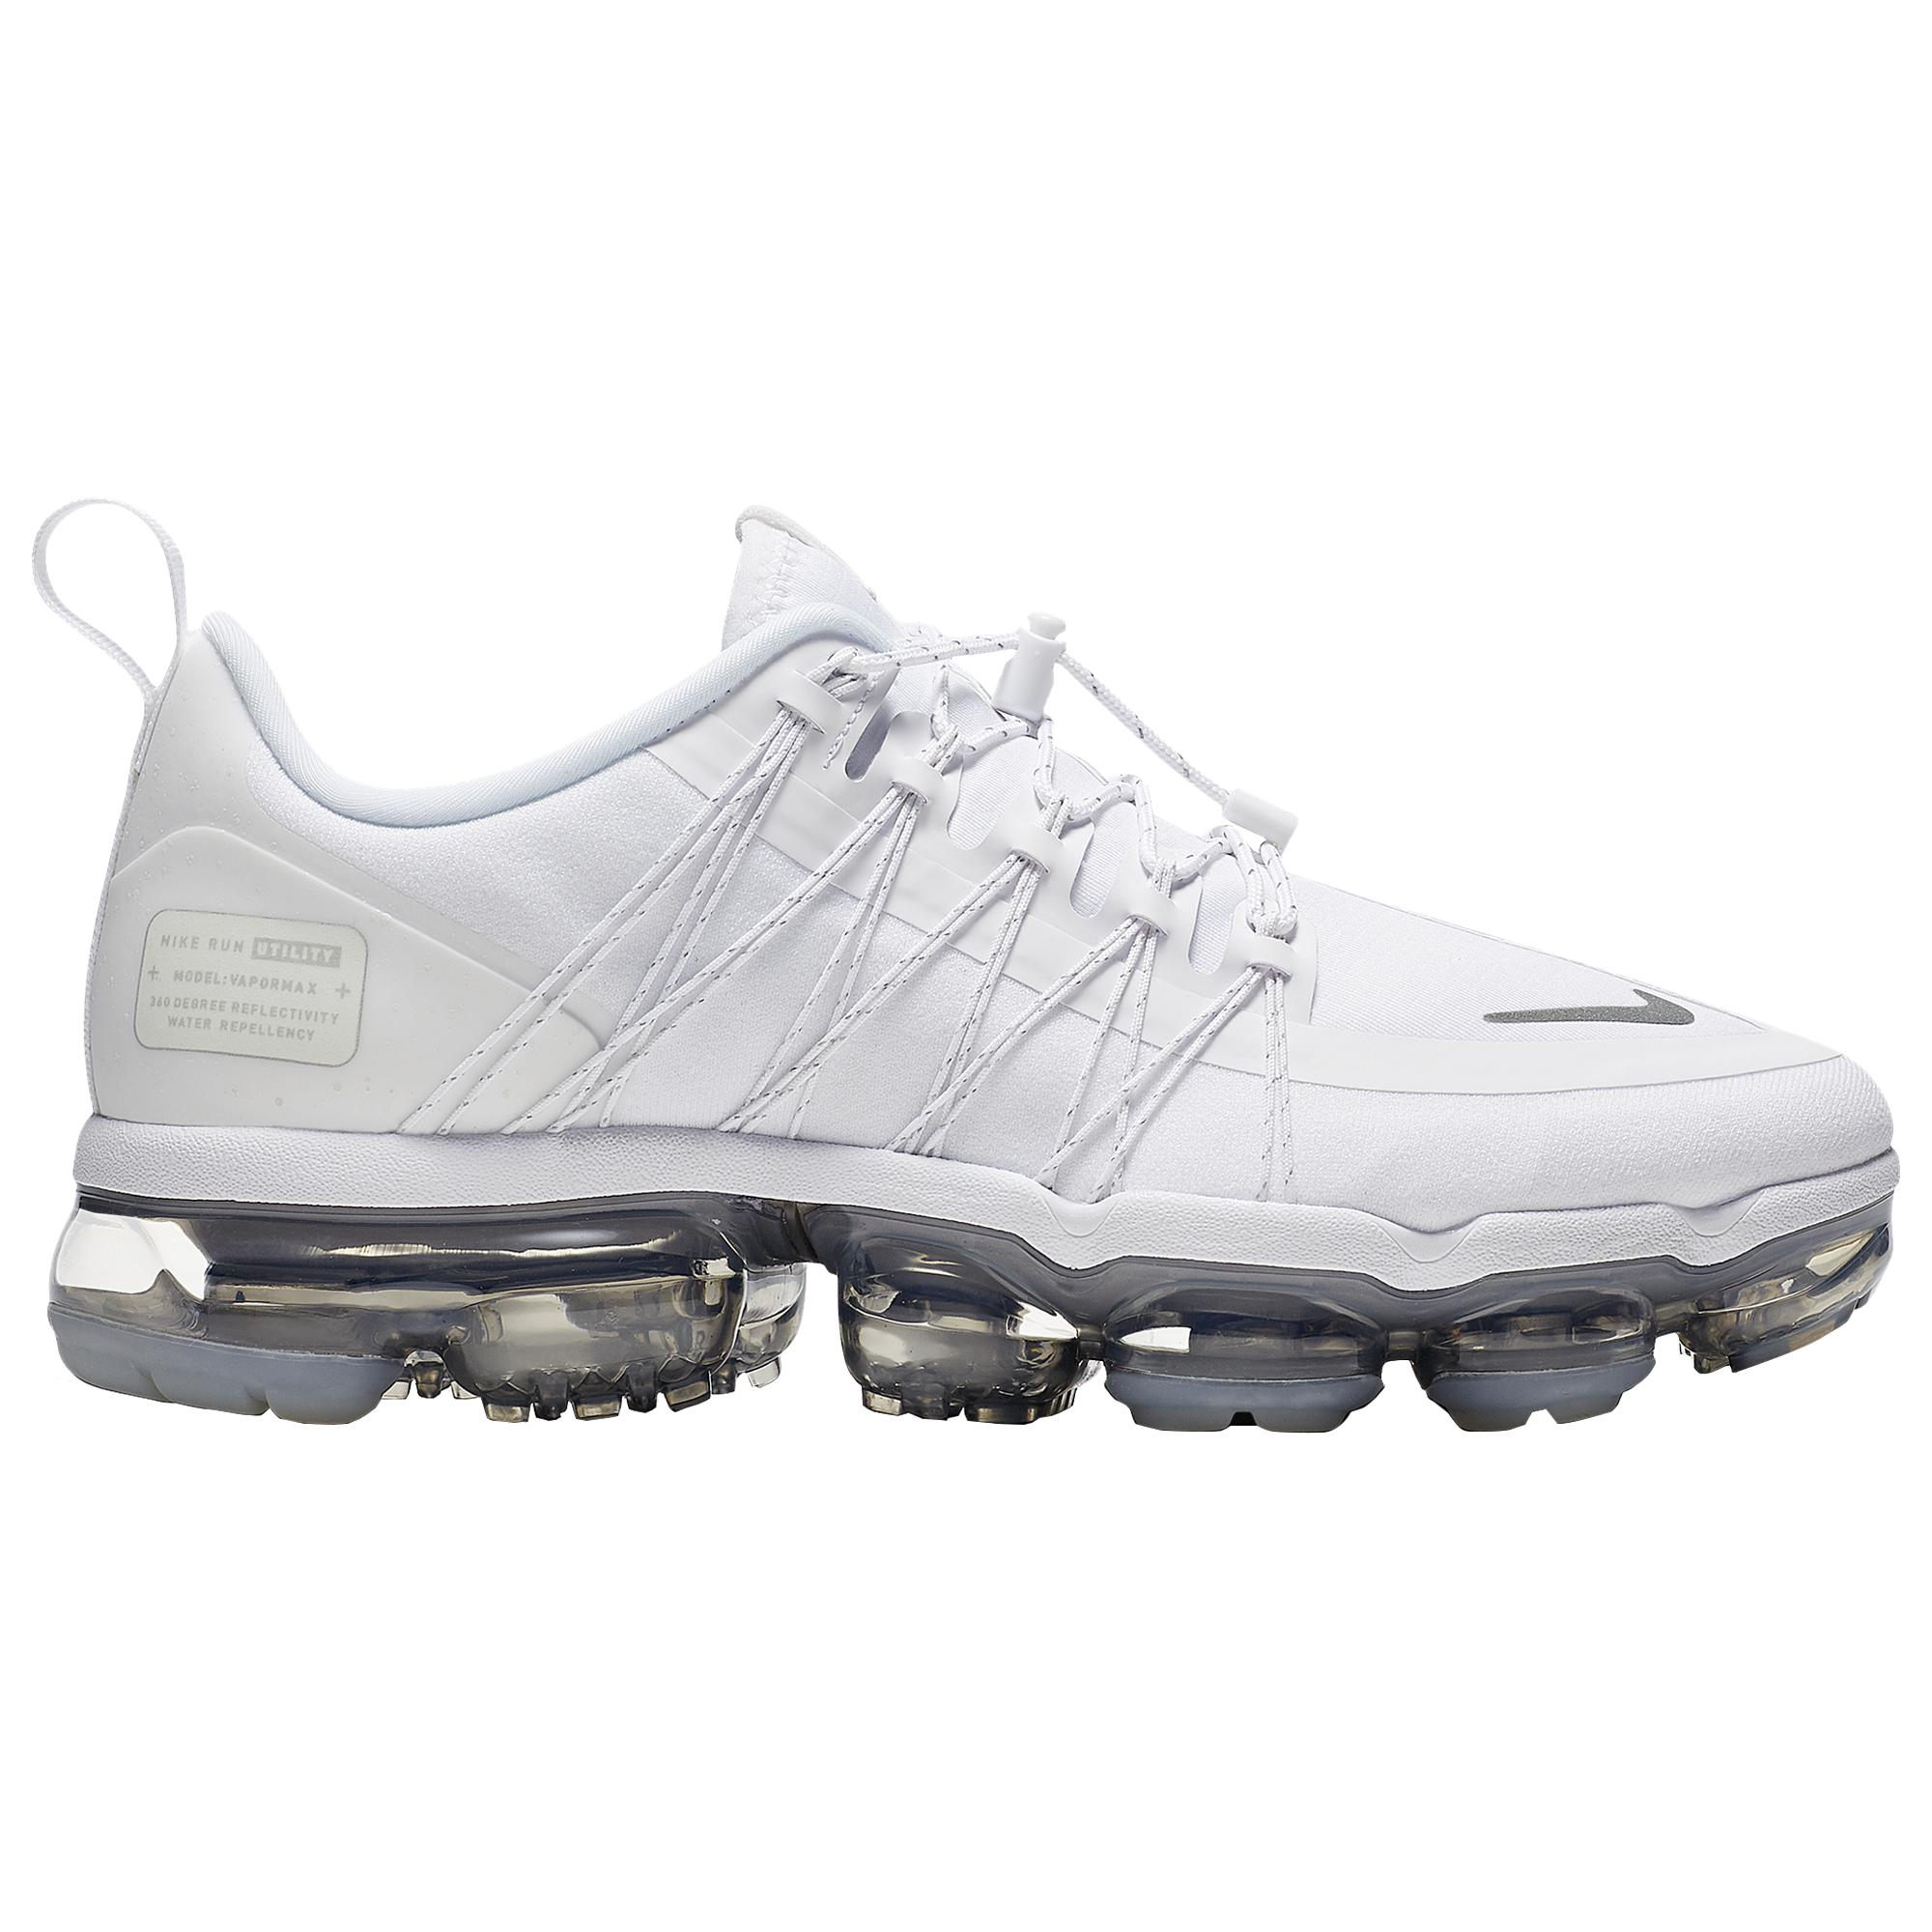 new arrival 958a1 3b461 More details available on SIX 02. Visit site. 1  2. Nike - White Air  Vapormax Run Utility - Lyst. View fullscreen